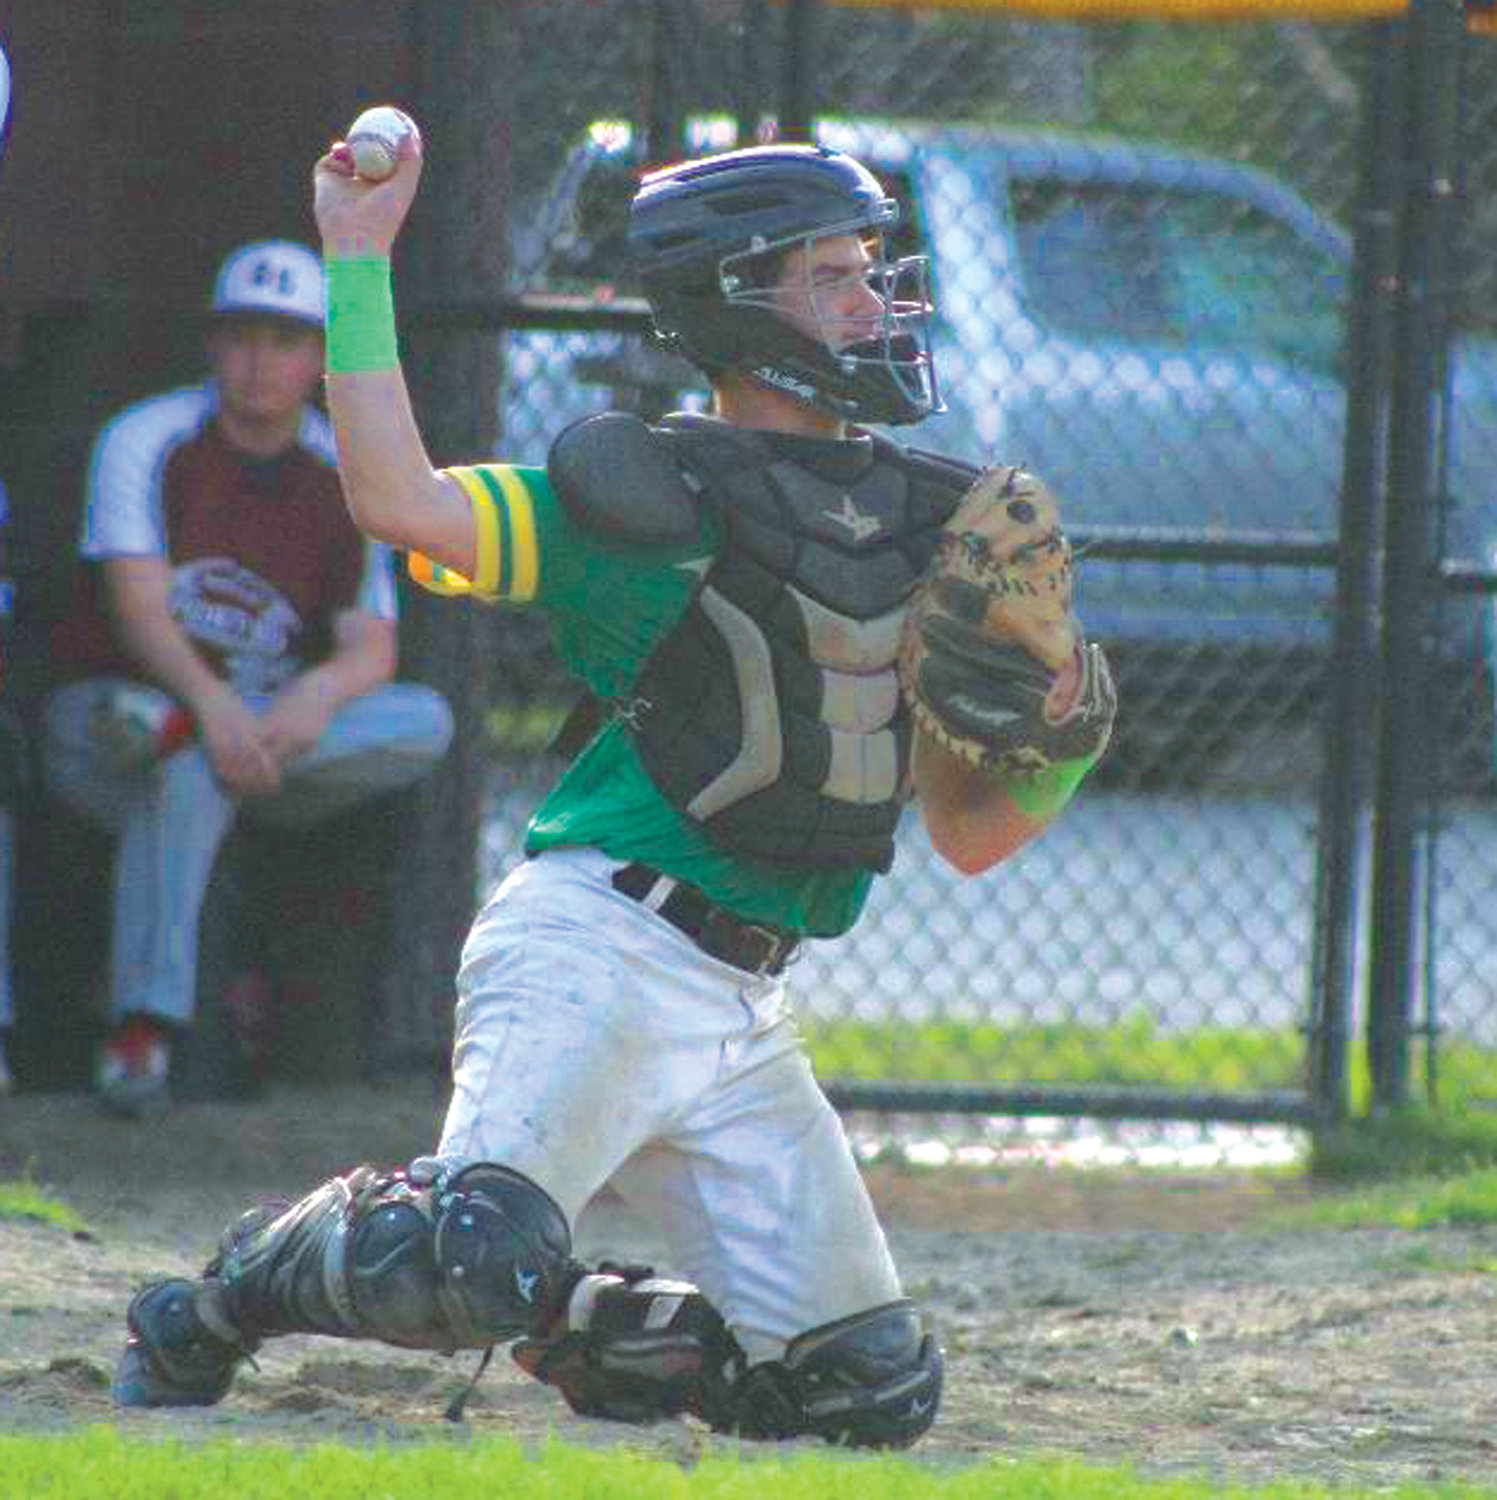 BEHIND THE PLATE: NEFL's Jeremiah Mullane.